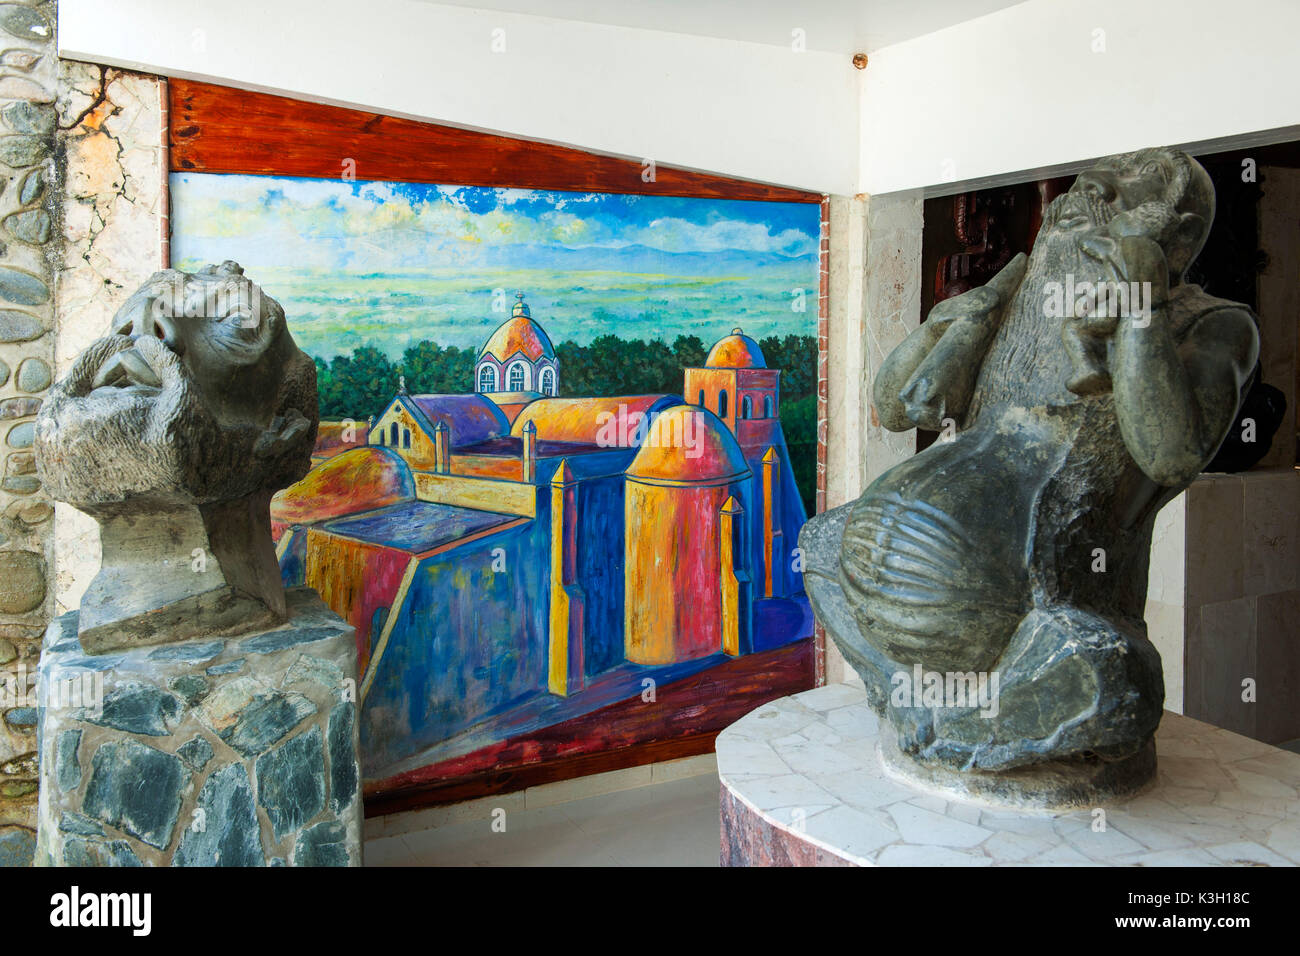 The Dominican Republic, north coast, Sosua, Castillo Mundo King, in 1991 from Rolf Schulz accommodates sketched the private collection of more than 1000 pieces of art from the neighbouring state Haiti. Here Haitian stone sculptures. - Stock Image